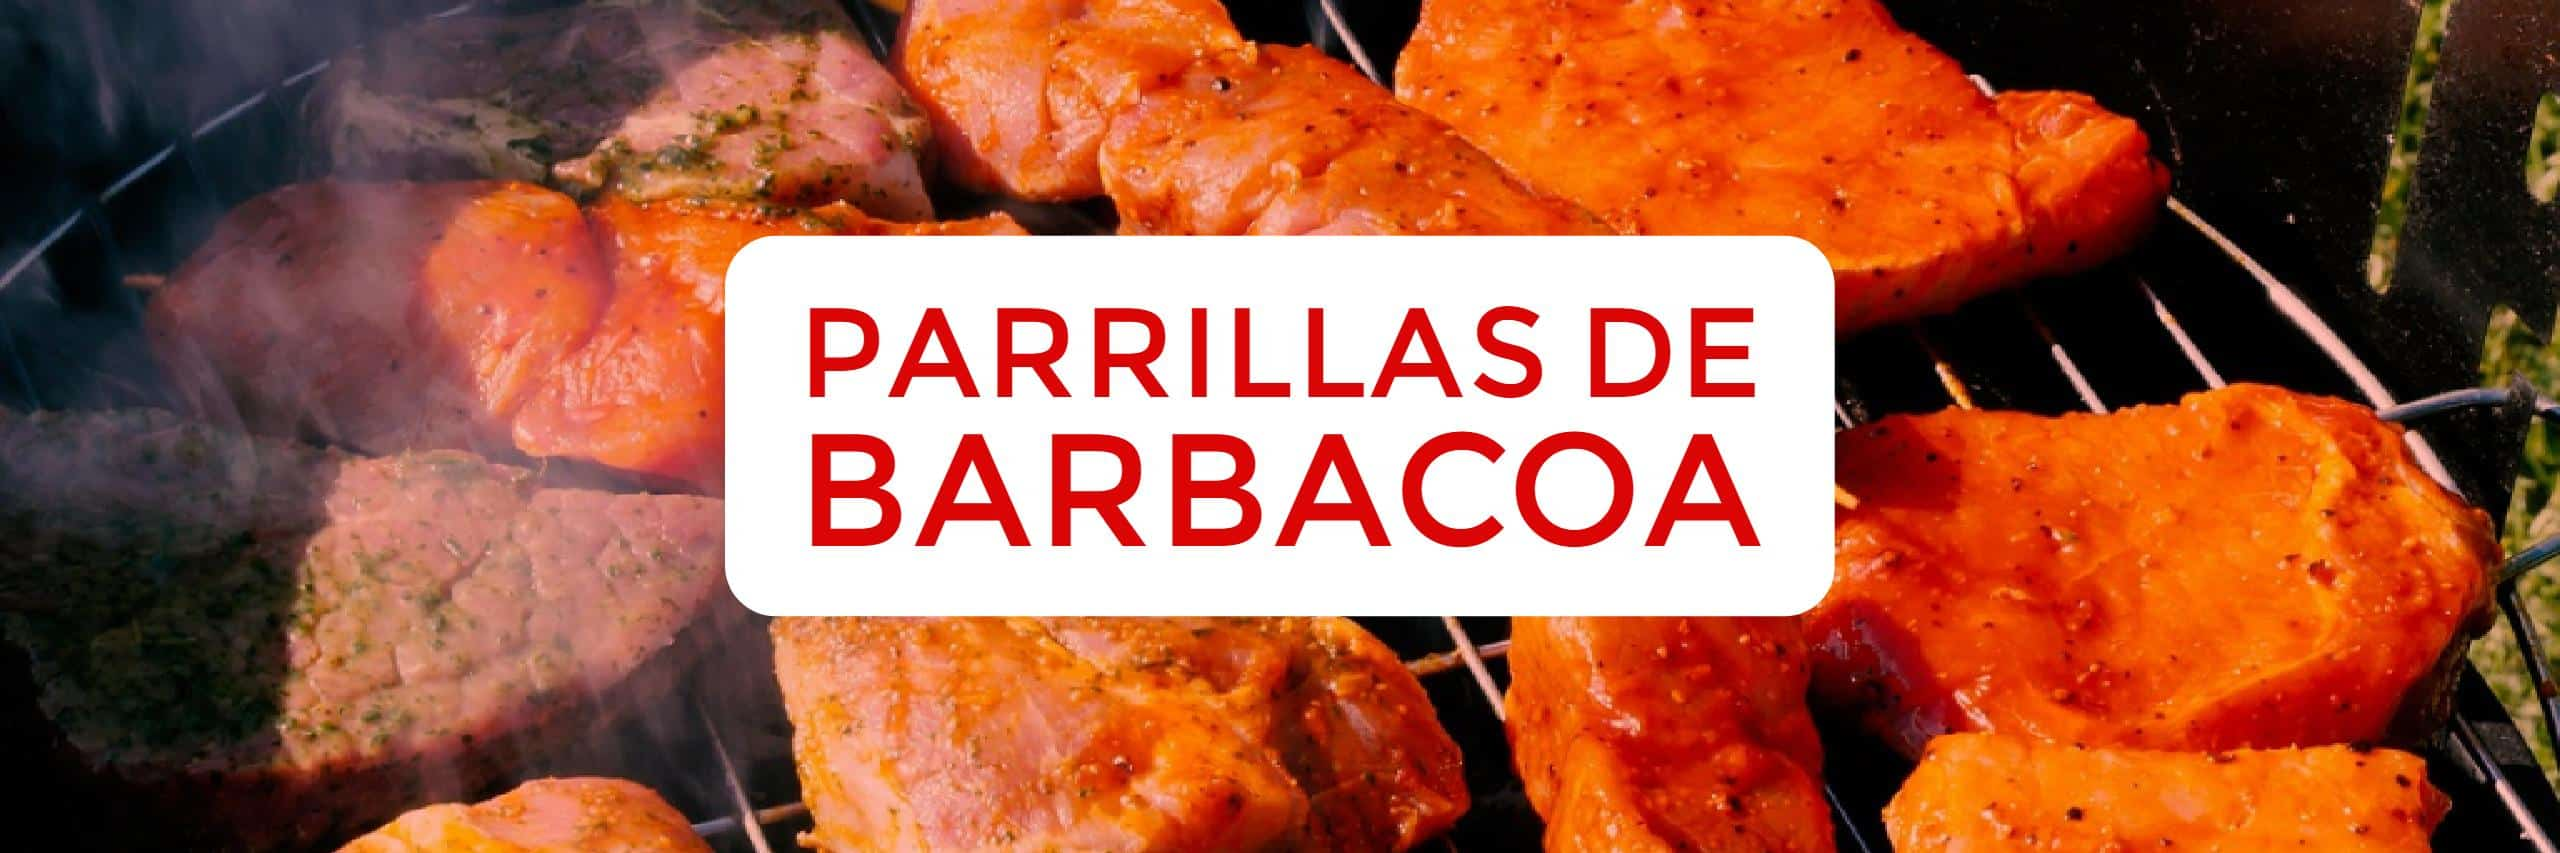 Hacer parrilla para barbacoa ideas de disenos for Parrillas de barbacoa